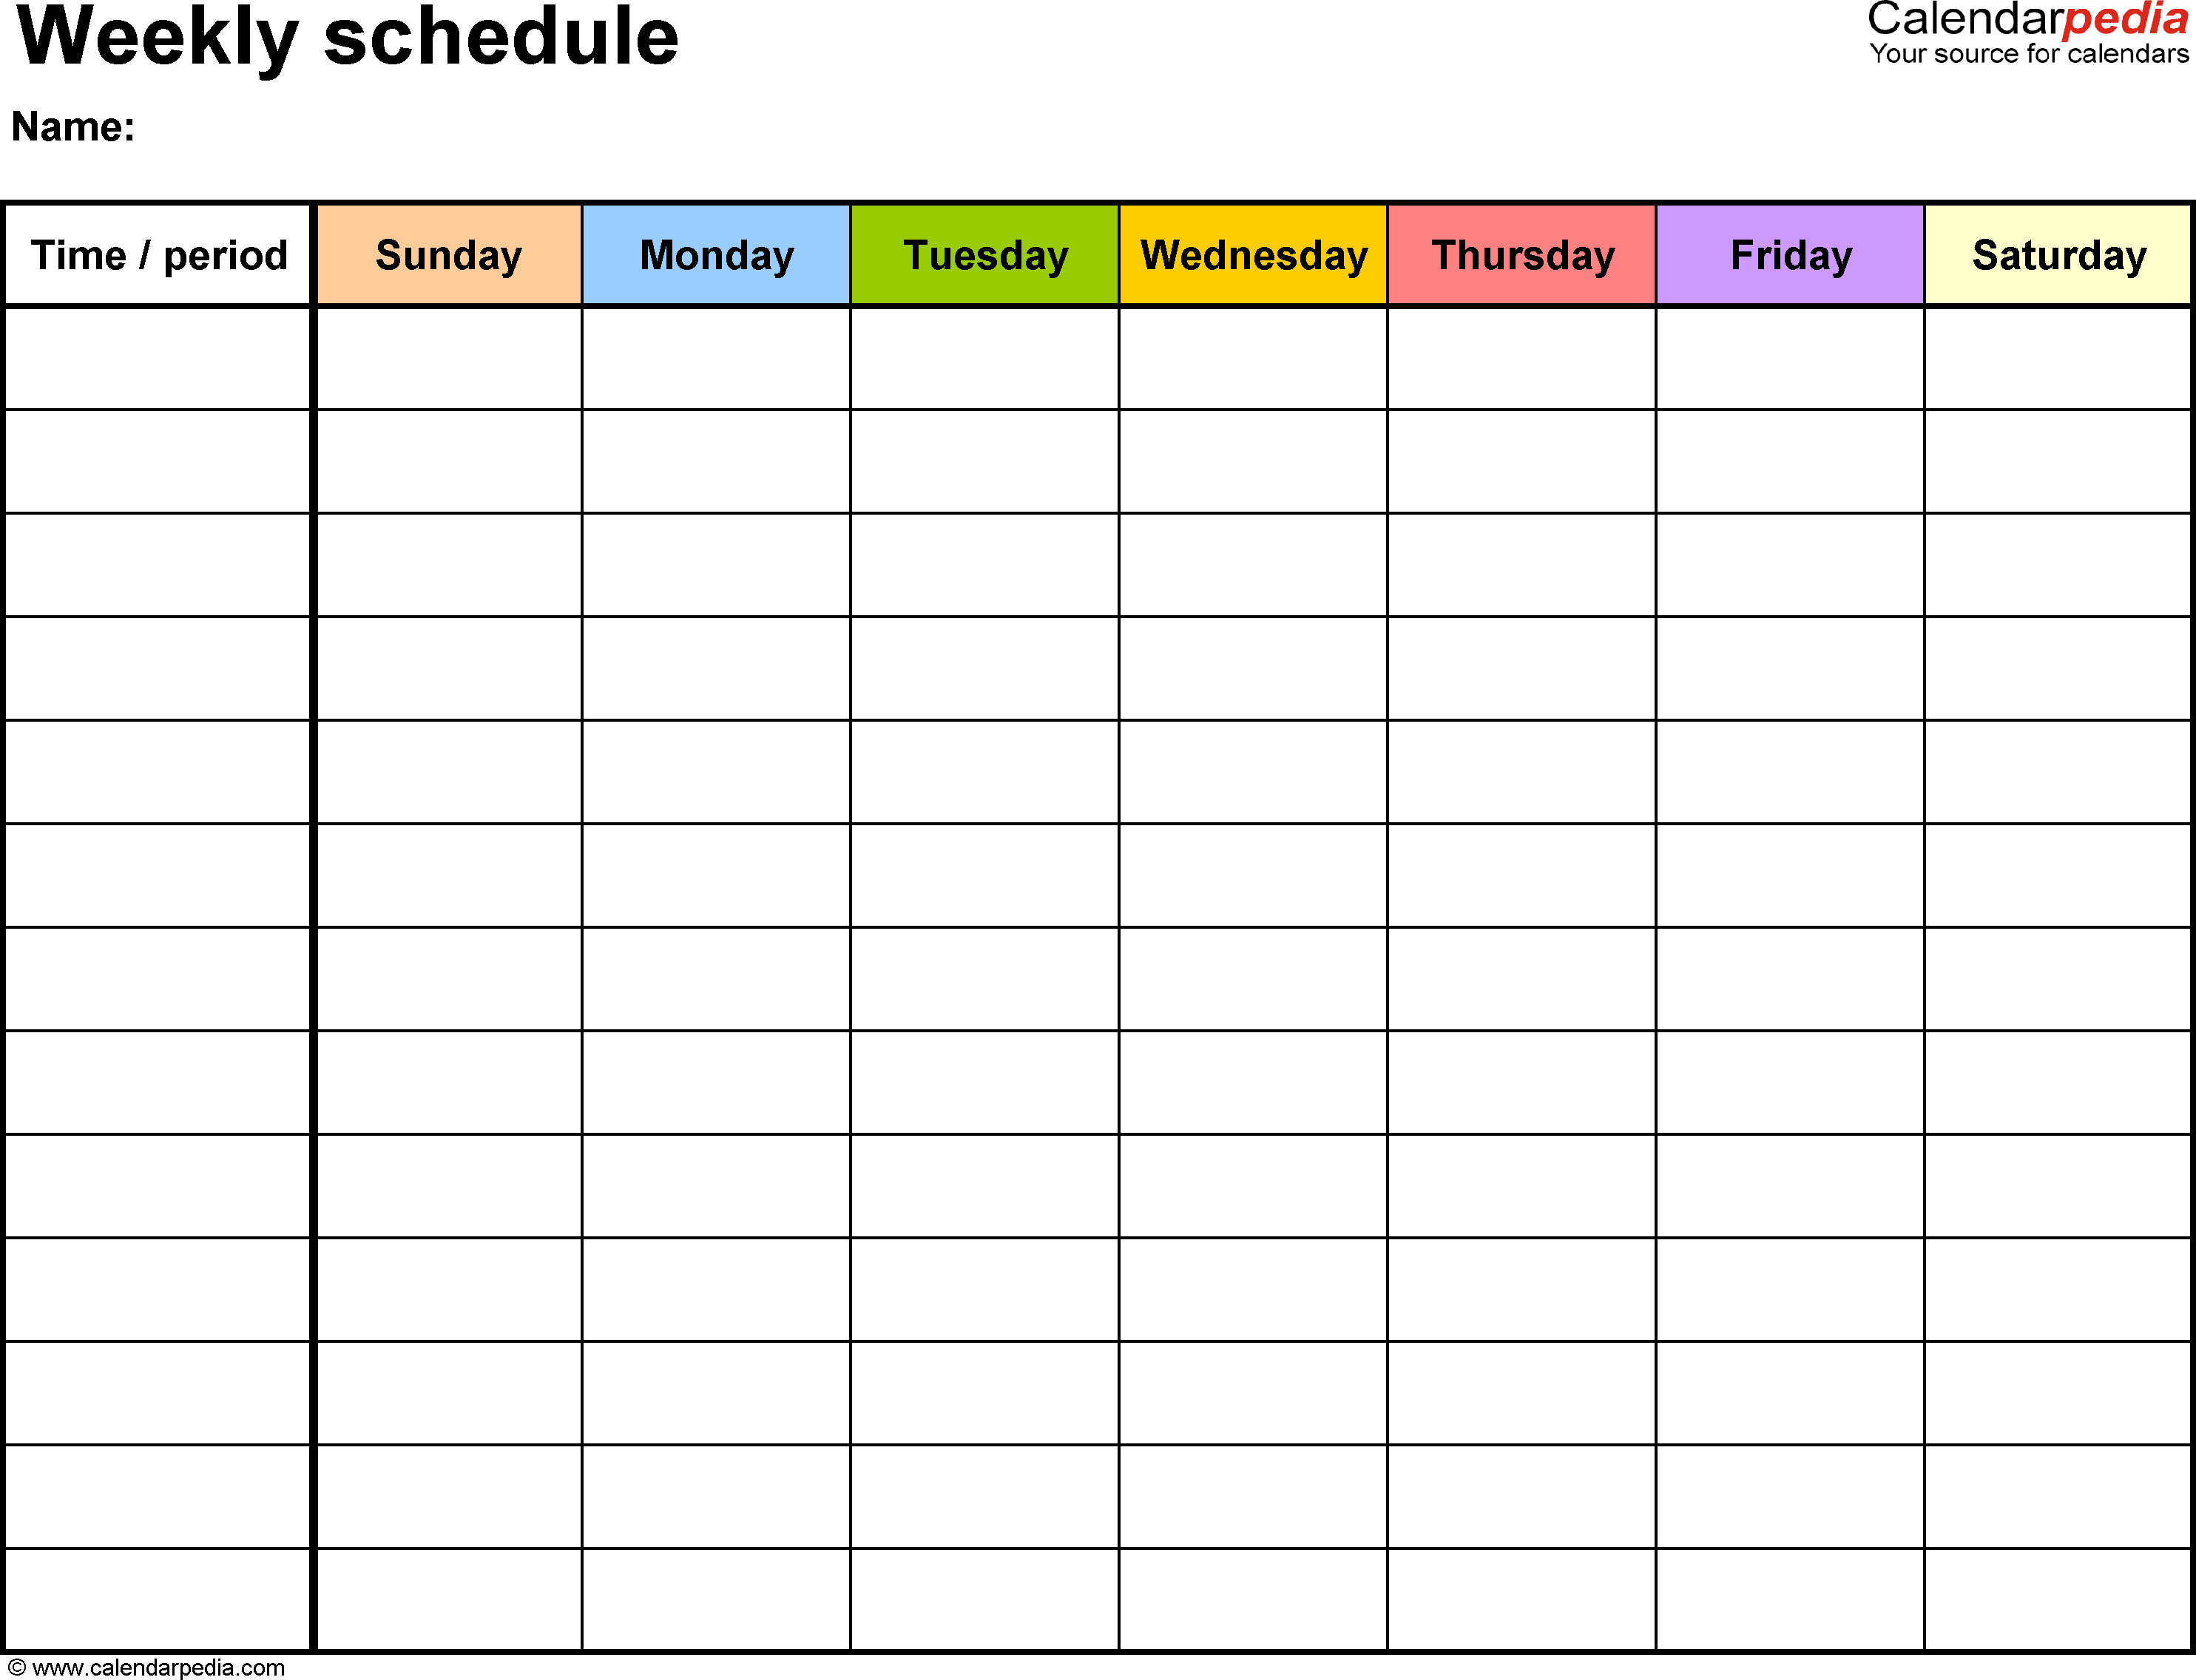 Free Weekly Schedule Templates For Excel - 18 Templates with Printable Work Week Calendar Template